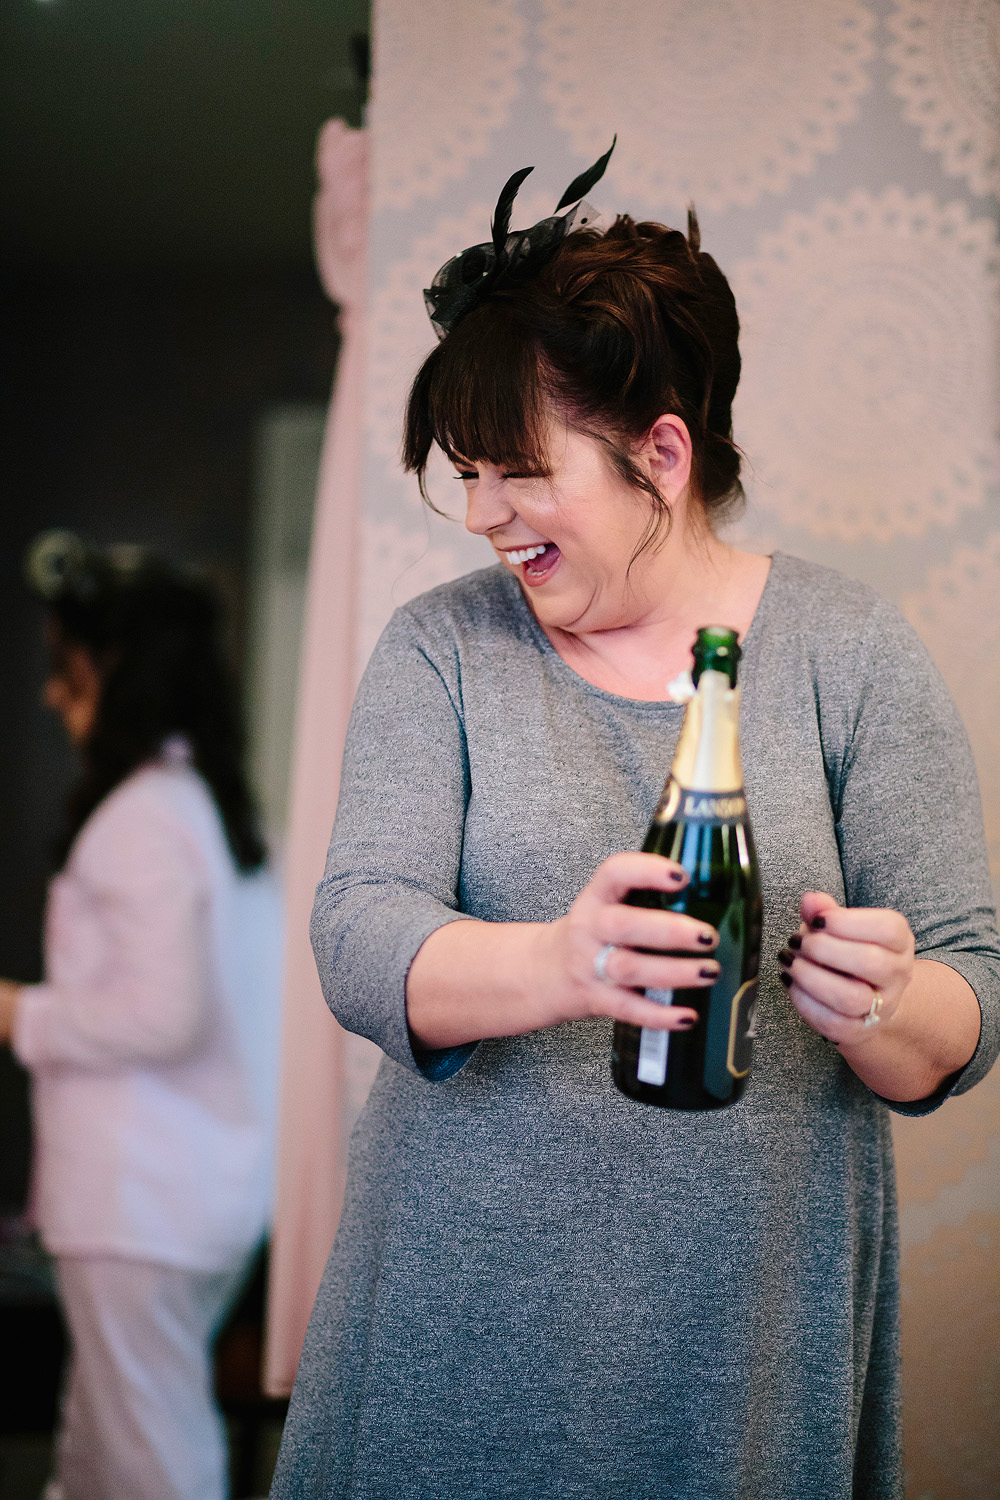 A bottle of champagne is opened